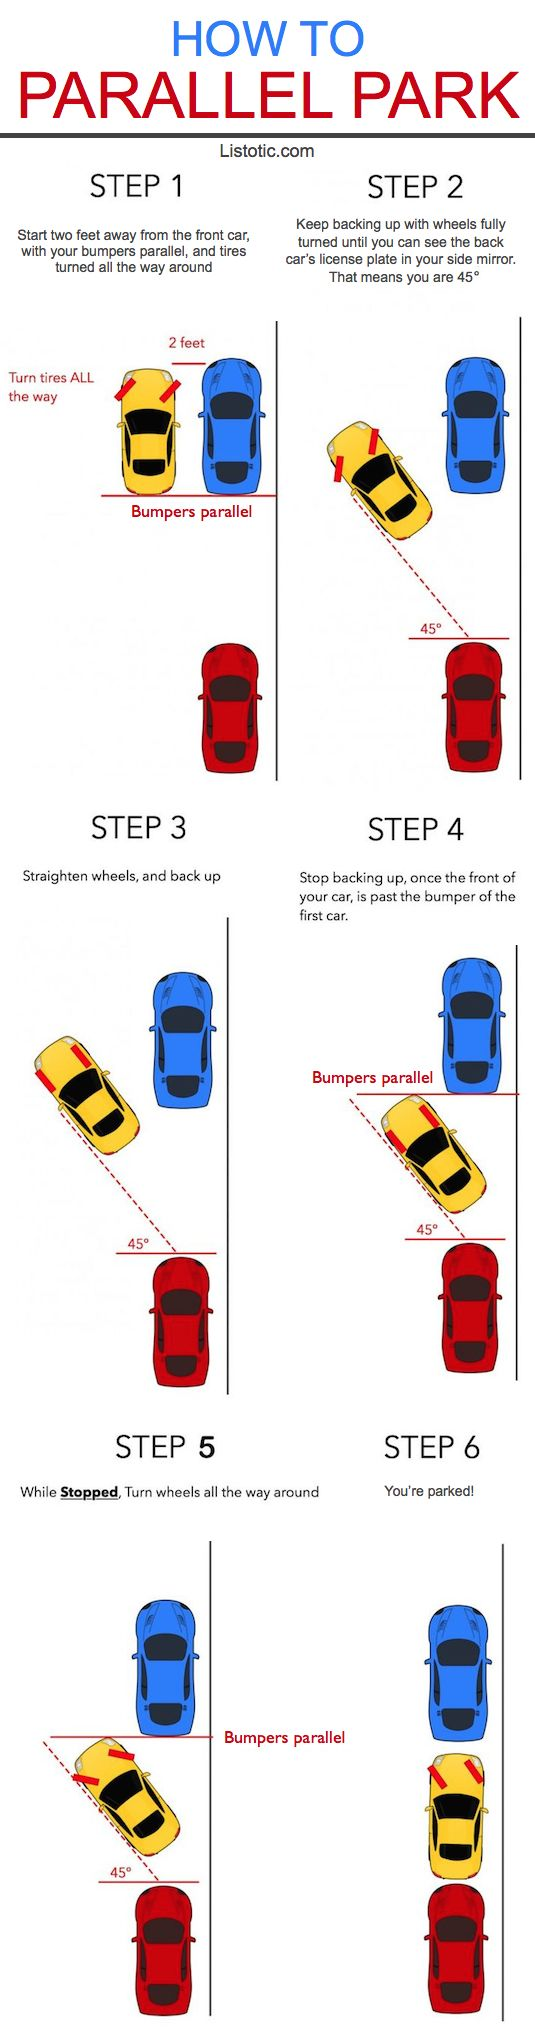 How to Parallel Park photo